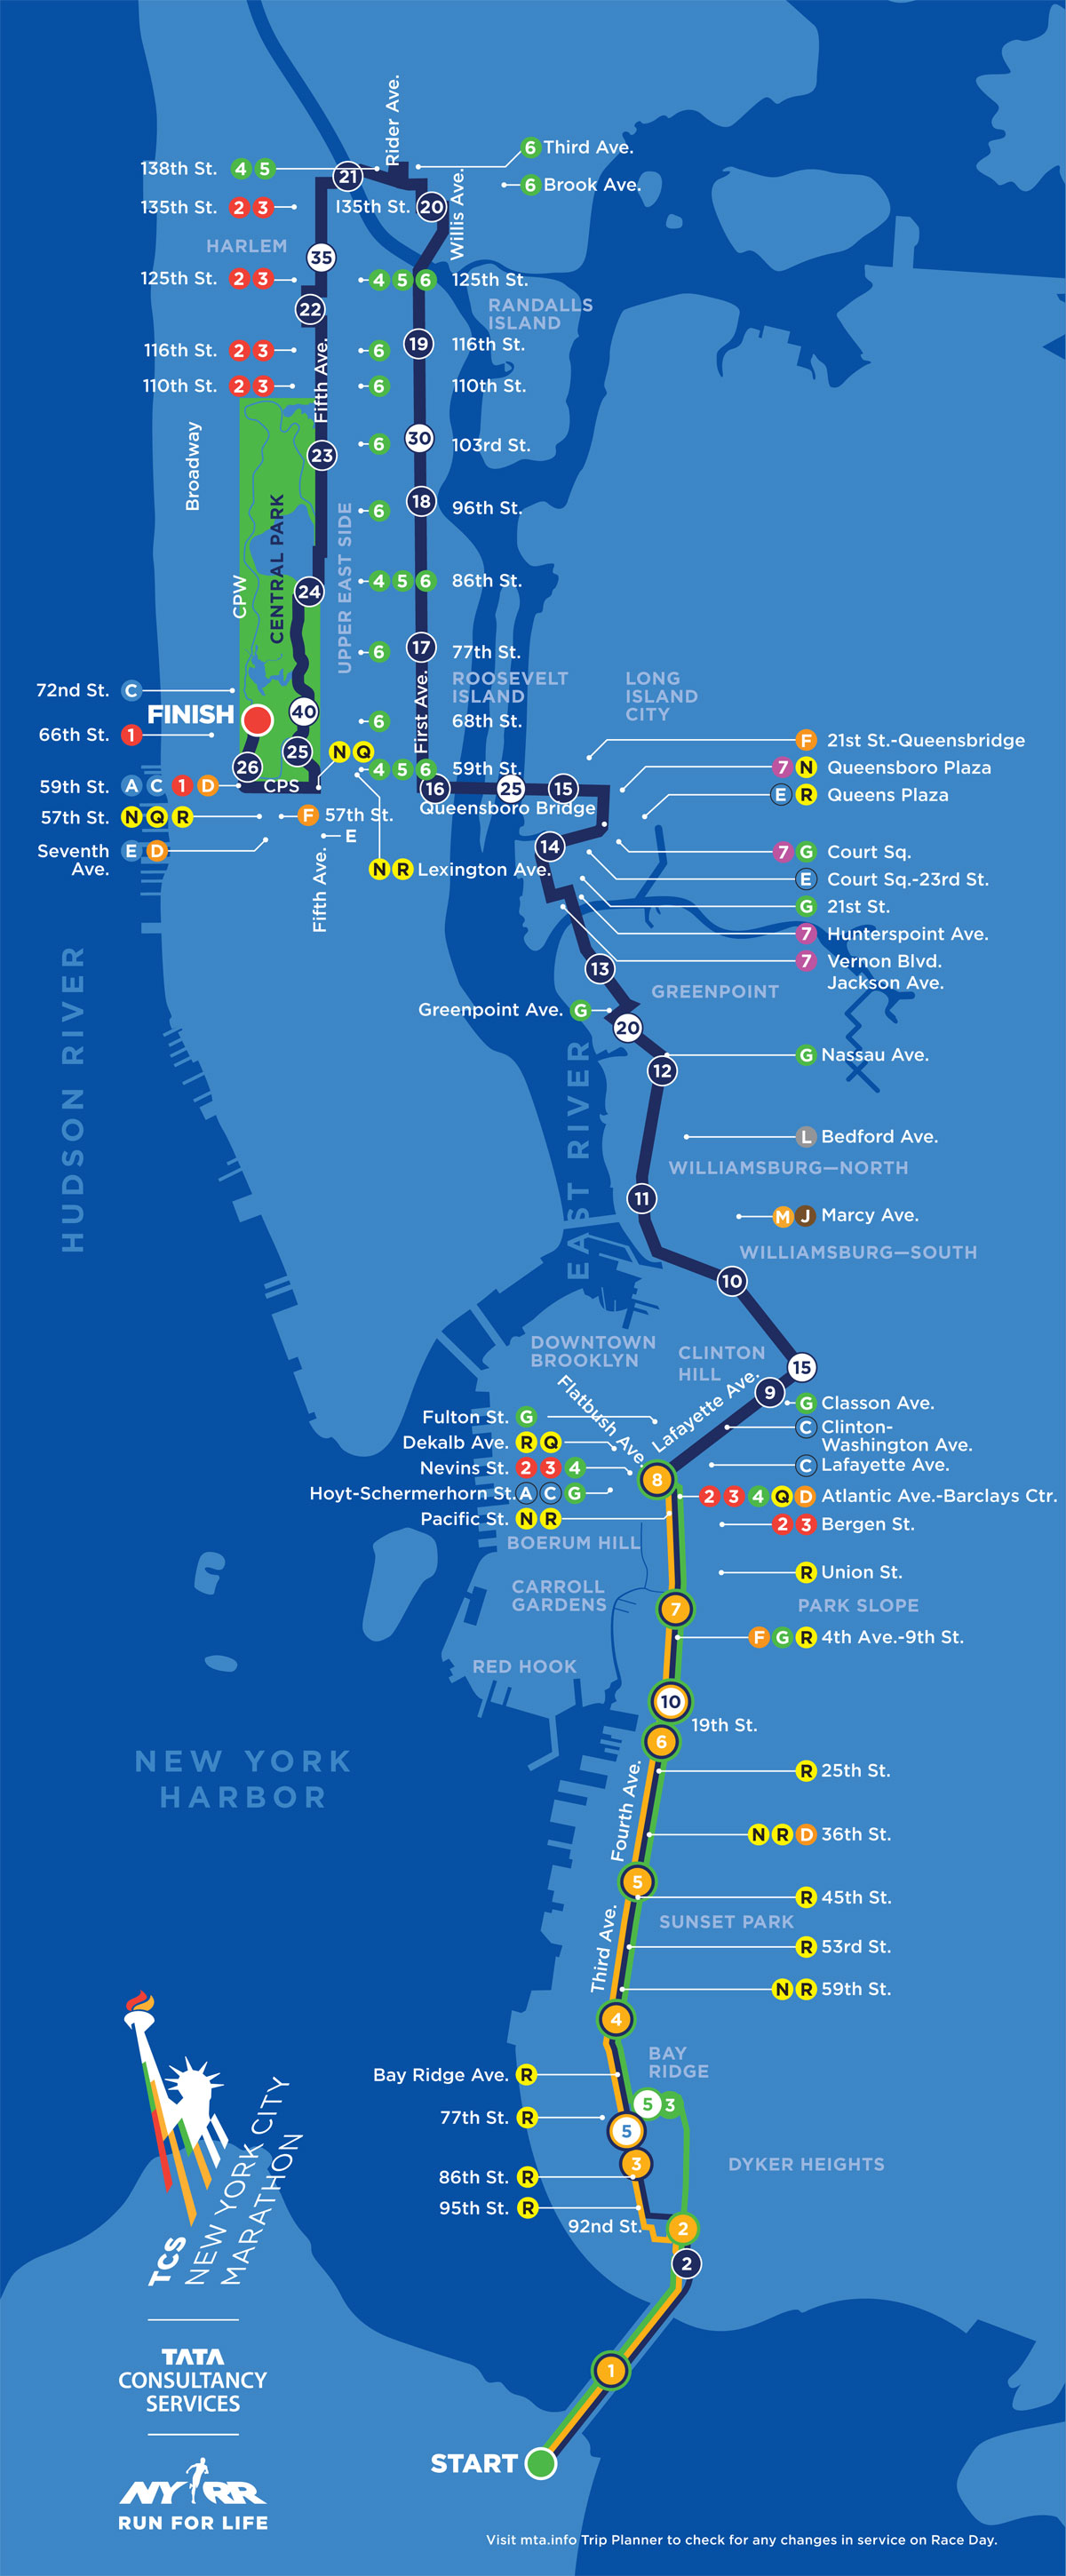 New York Marathon Sa Far Du Startplats Allt Om New York